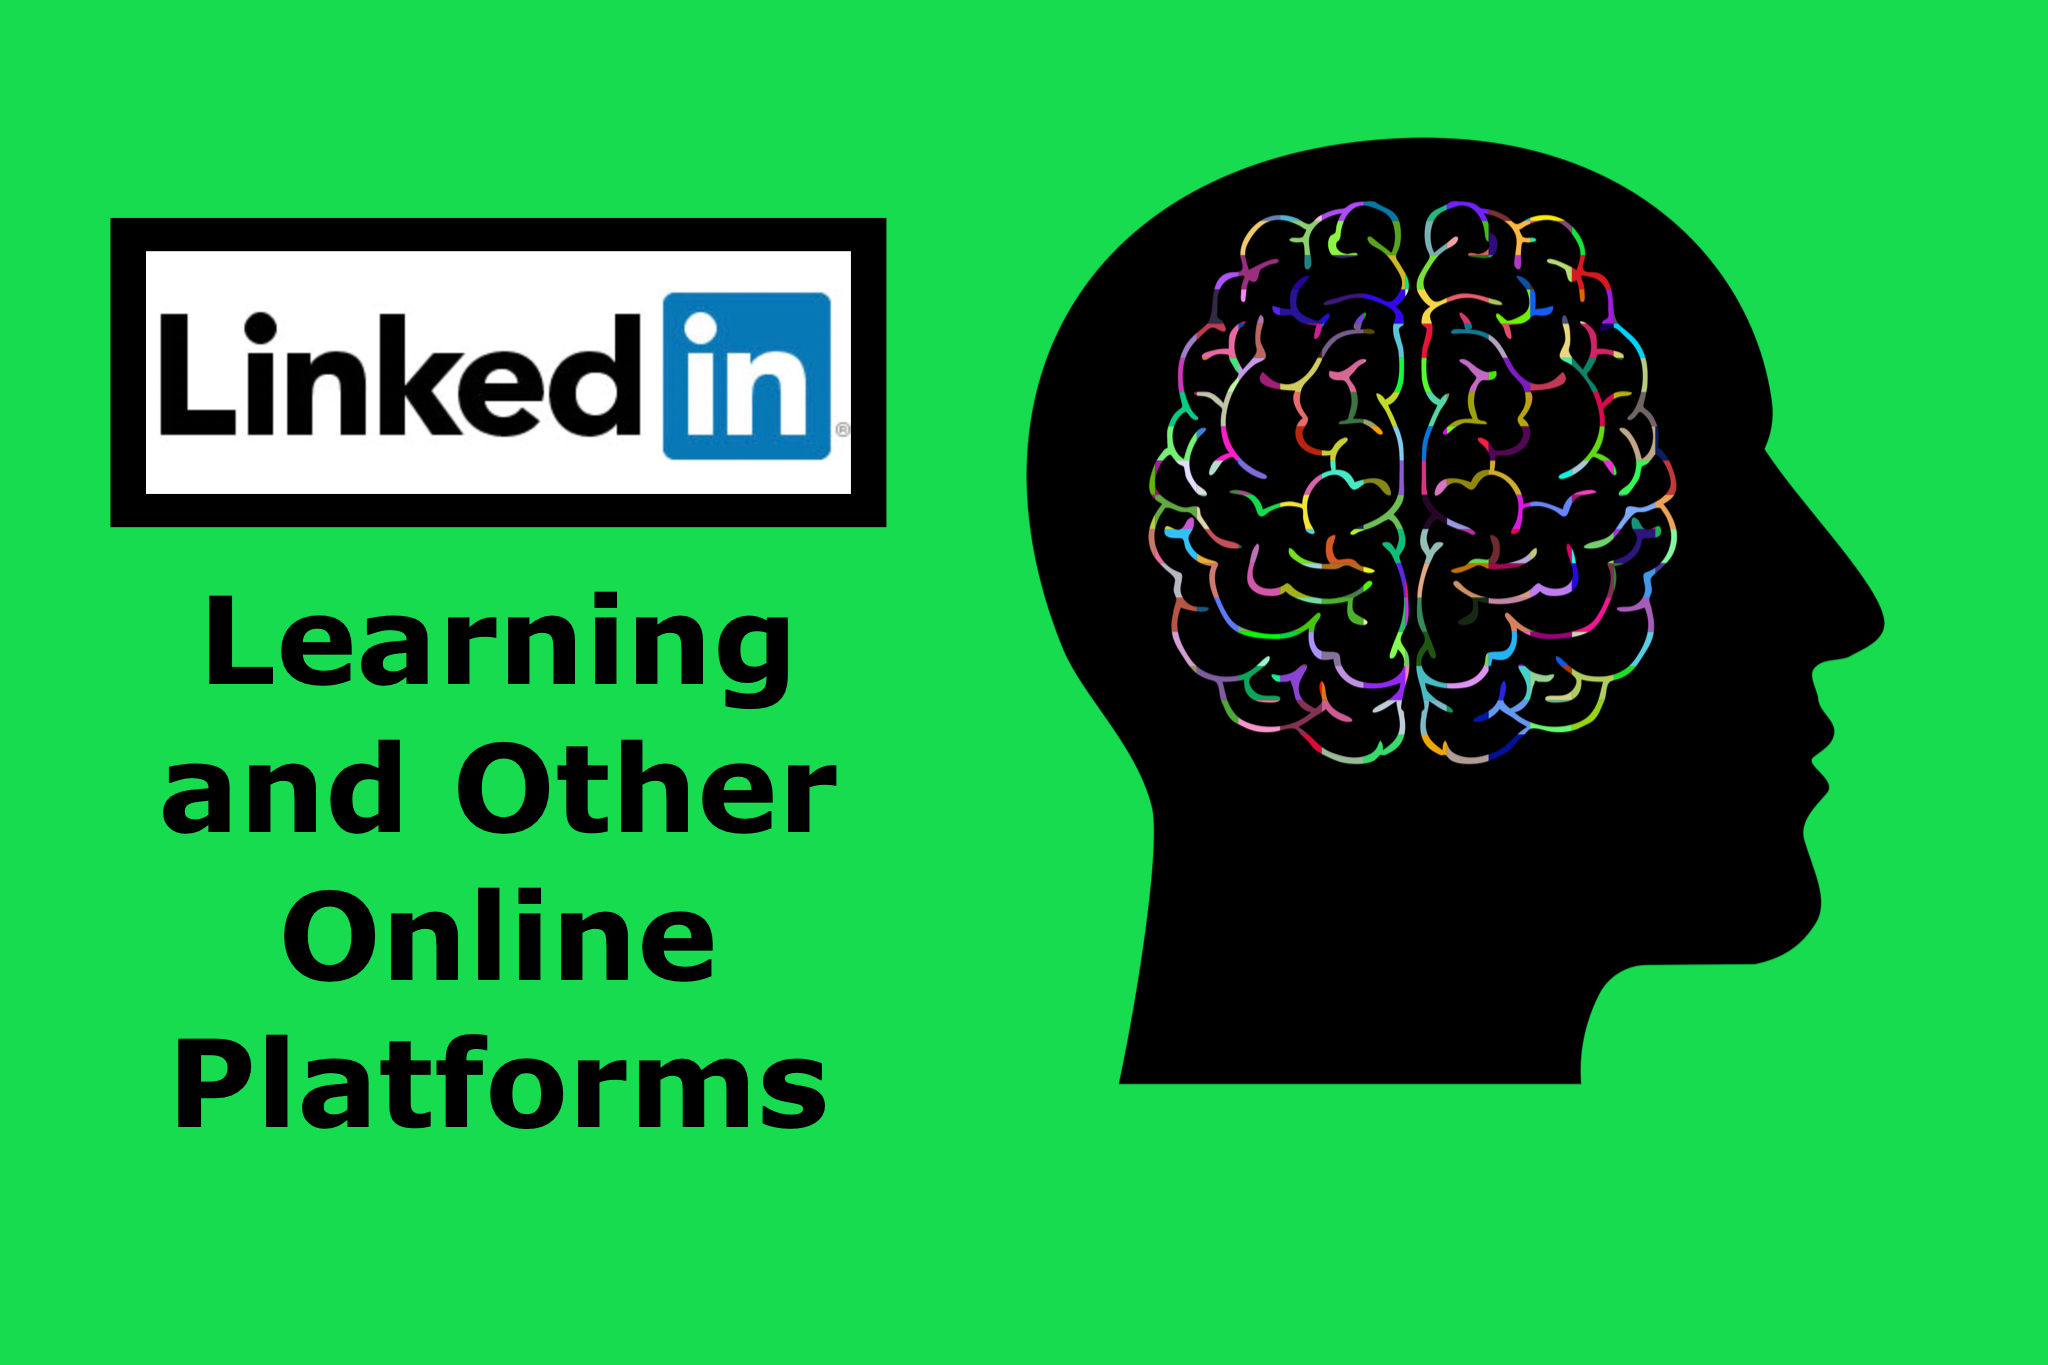 LinkedIn Learning and Other Online Platforms